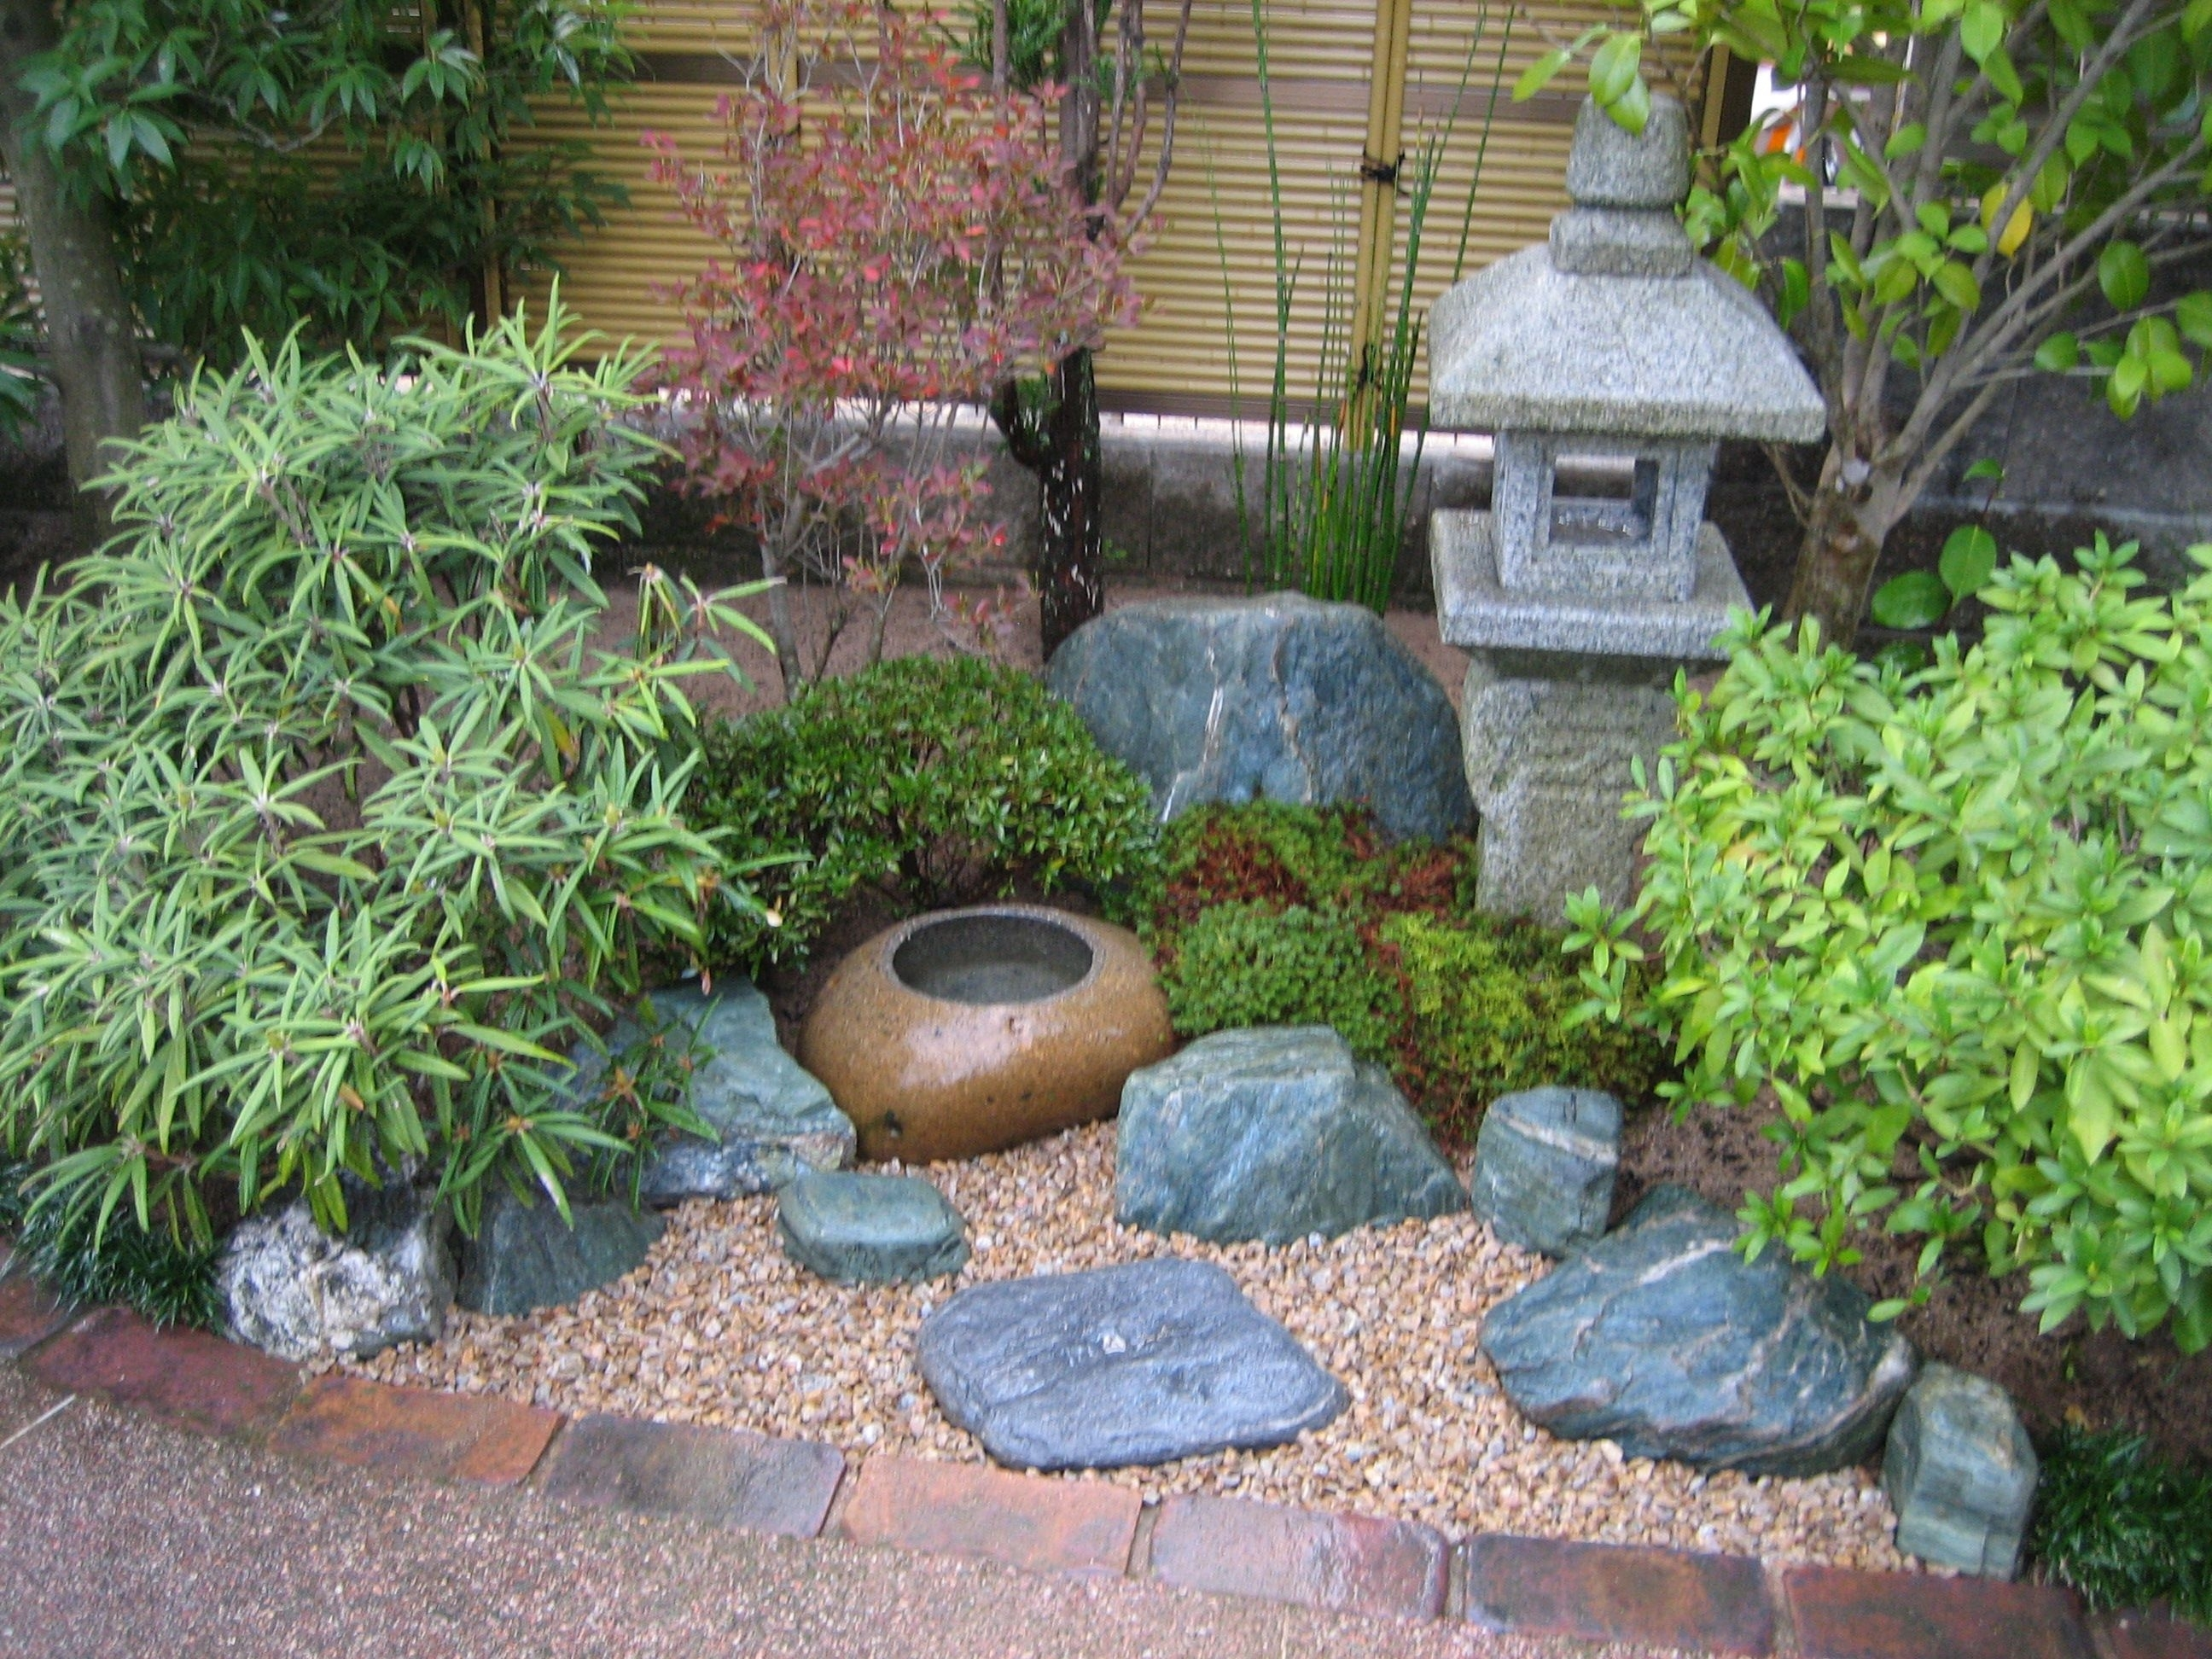 Design Garden Small Zen Garden Ideas Small Space Japanese Garden regarding Zen Garden Designs For Small Spaces